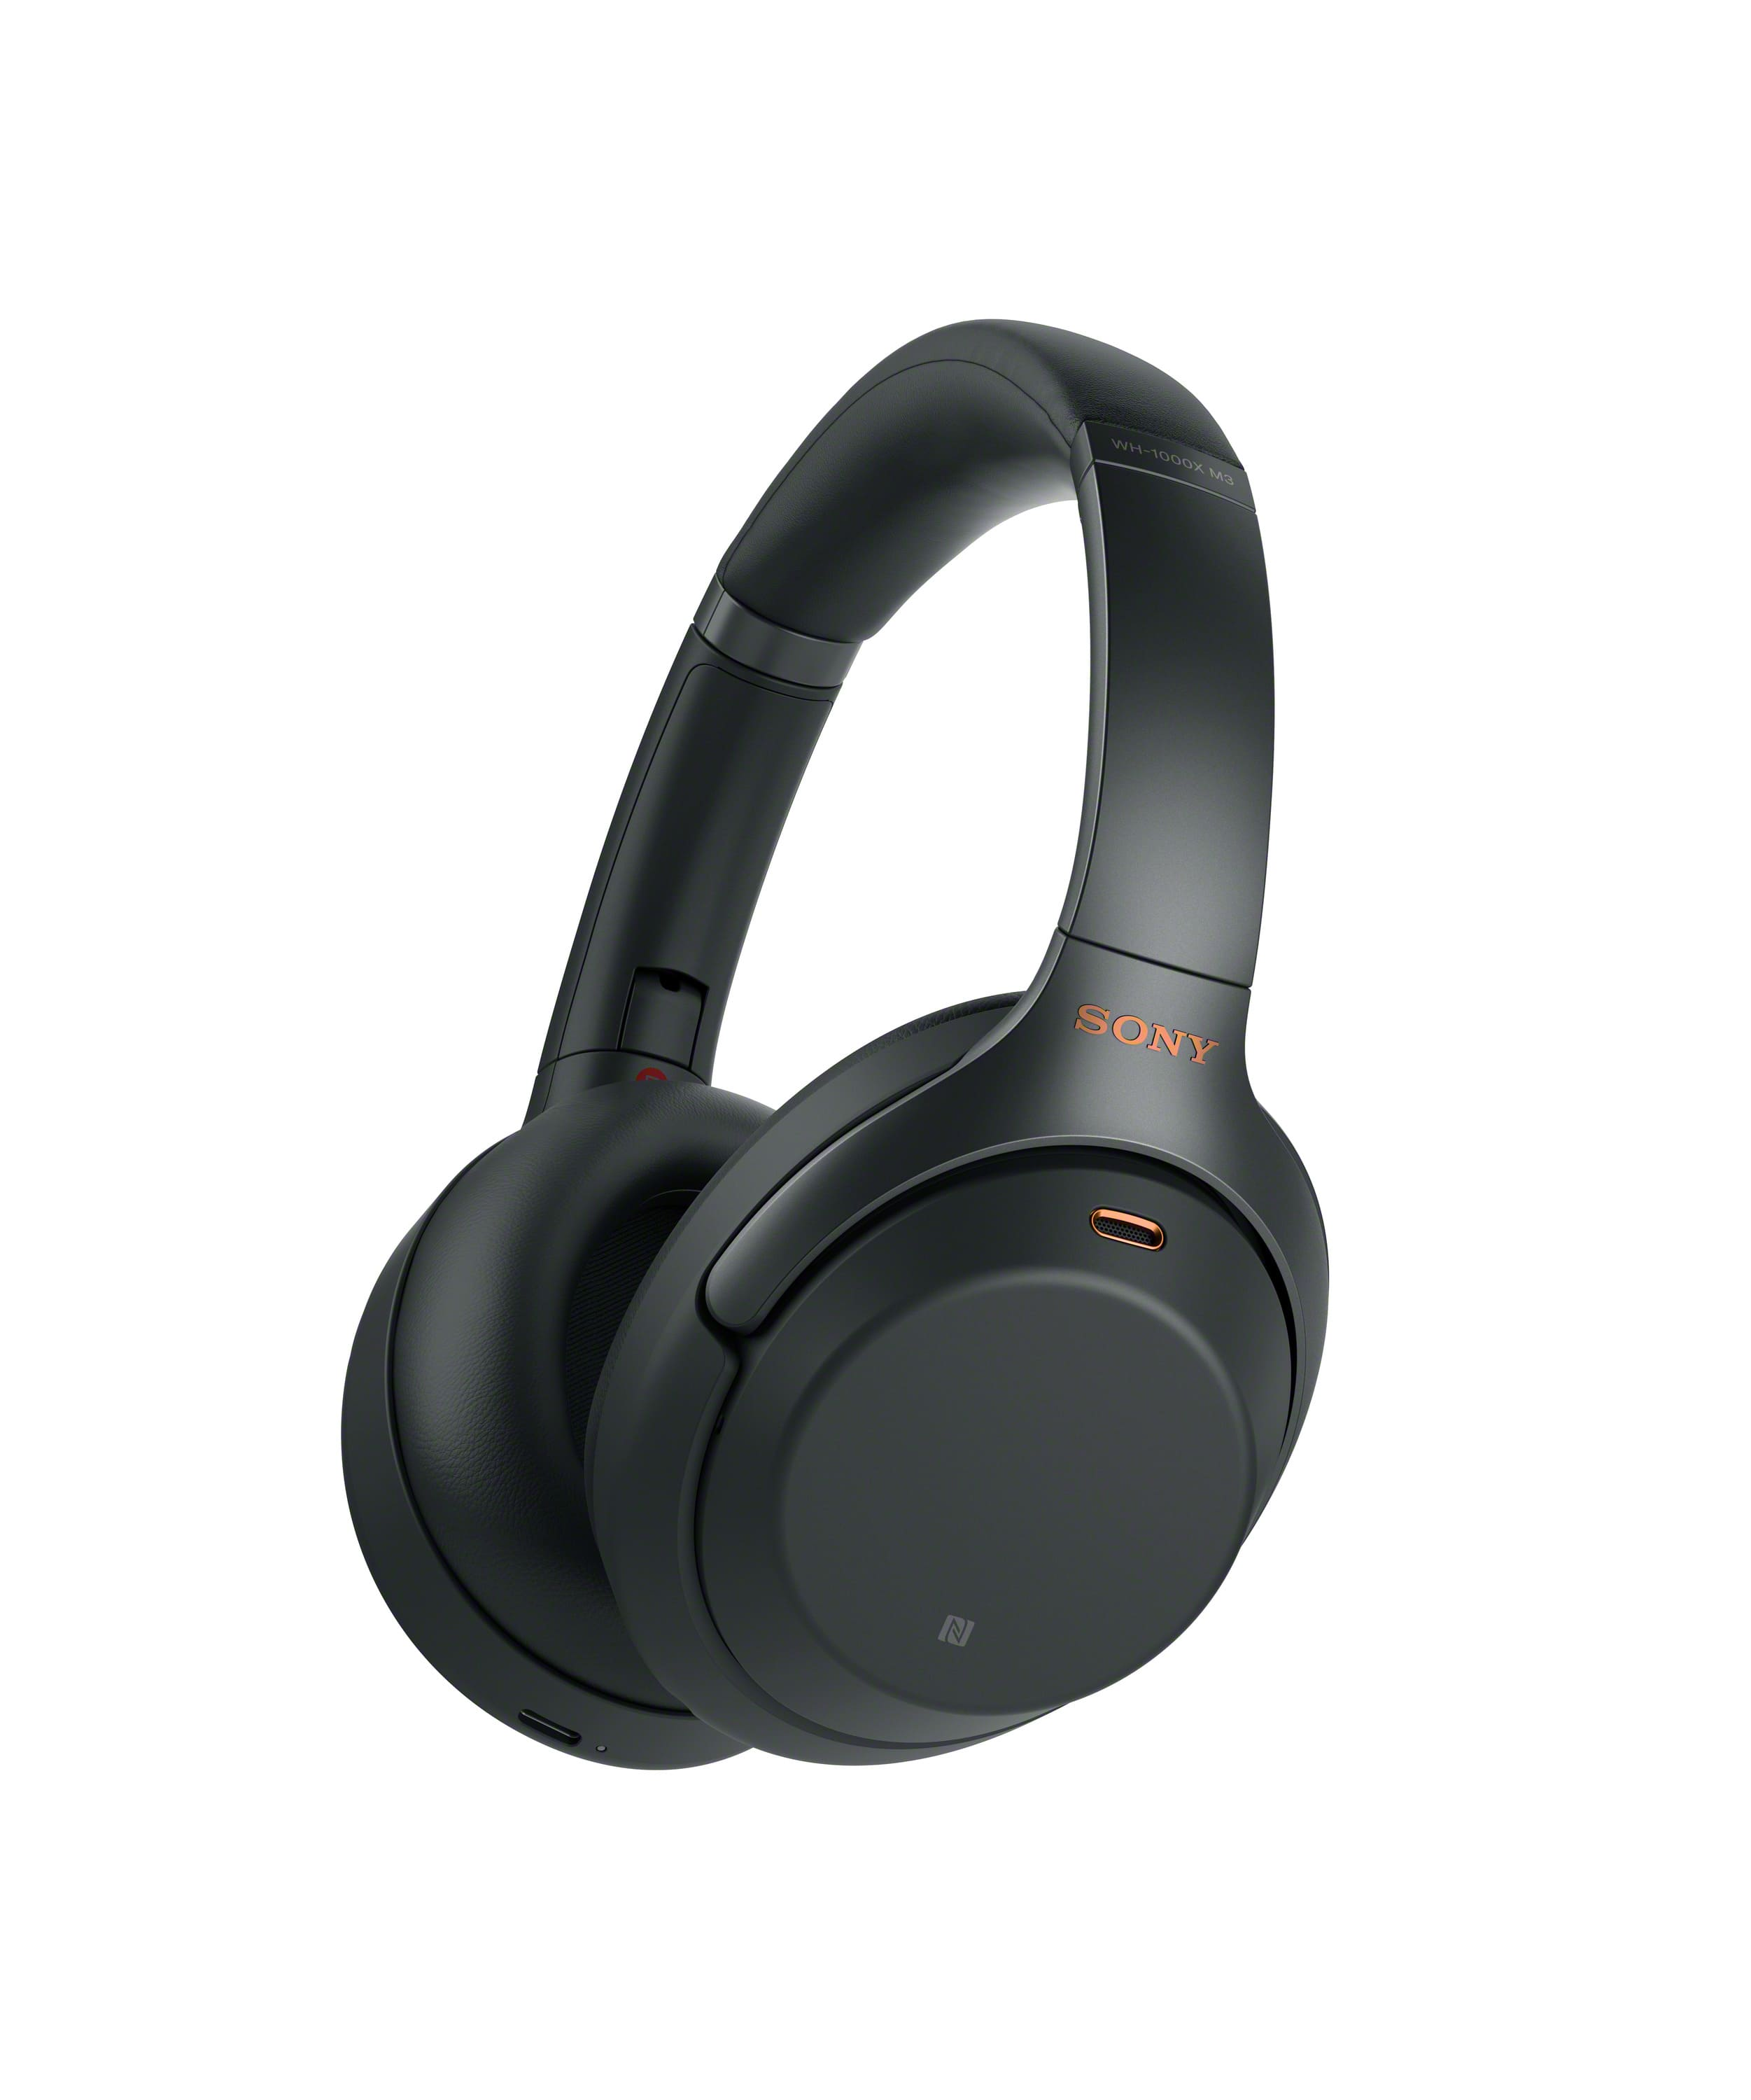 Sony WH1000XM3 (Refurbished) $200 + Free Shipping $199.99